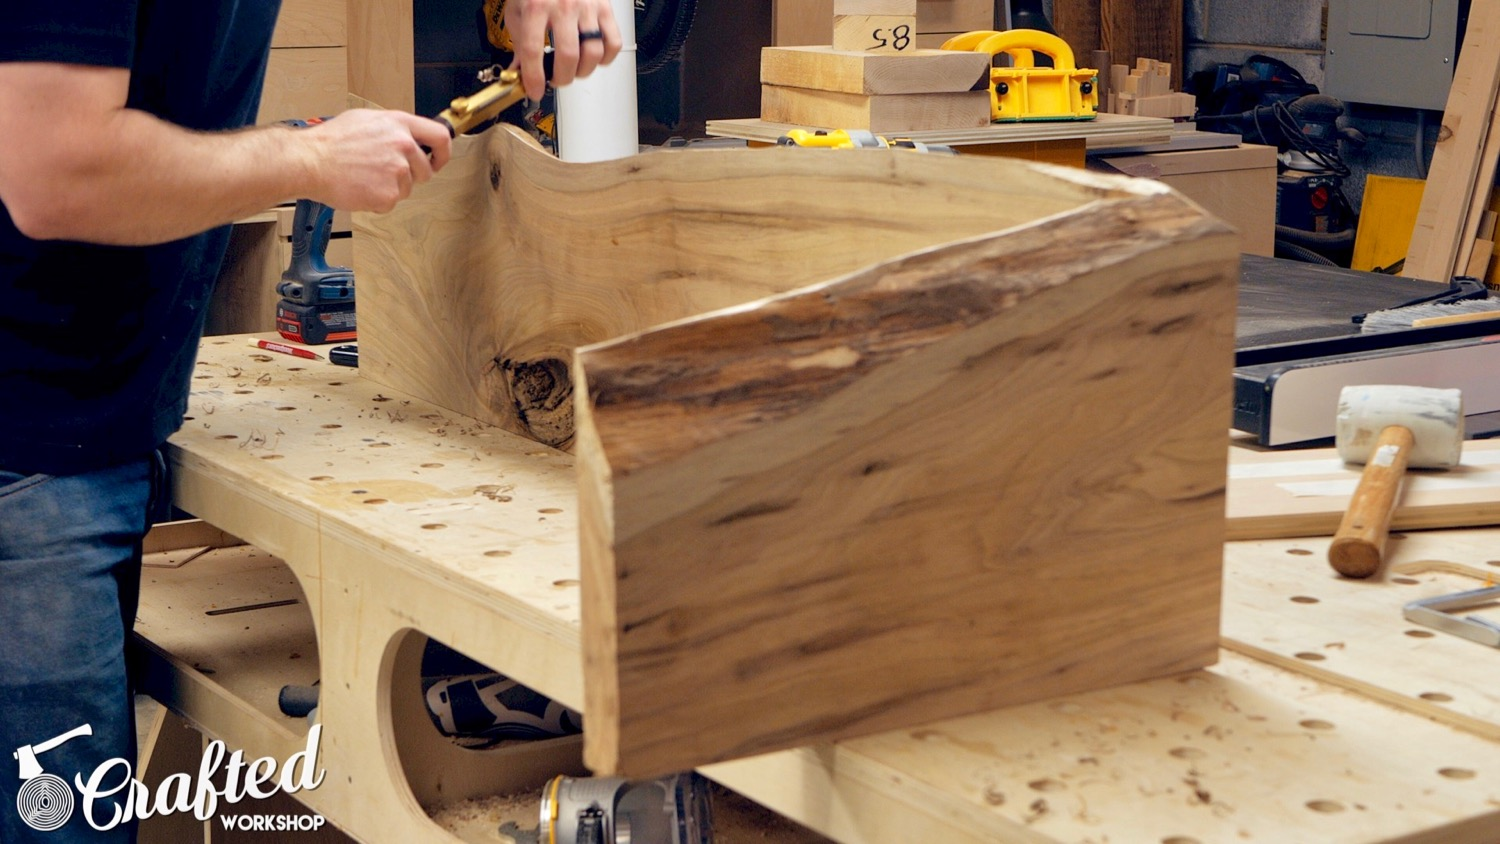 shaping live edge slab table with hnt gordon spokeshave